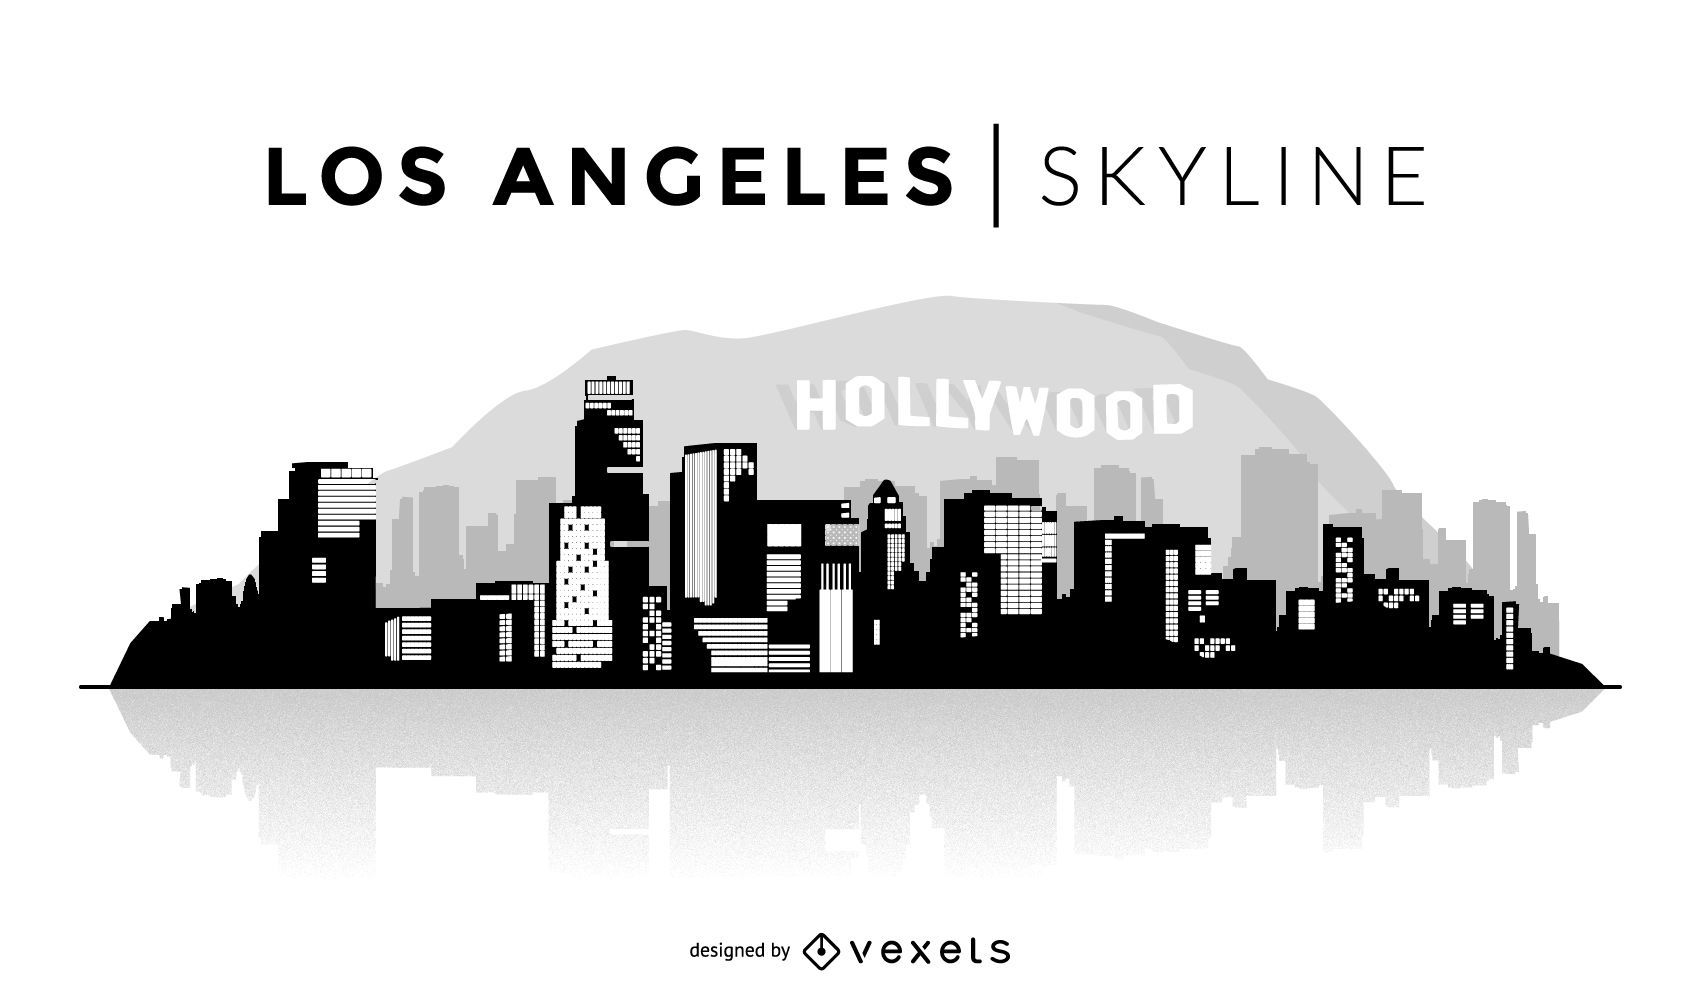 Gracious Los Angeles Skyline Download Large Image User Los Angeles Skyline Silhouette Vector Download Los Angeles Skyline Silhouette Vector houzz-02 Los Angeles Skyline Silhouette